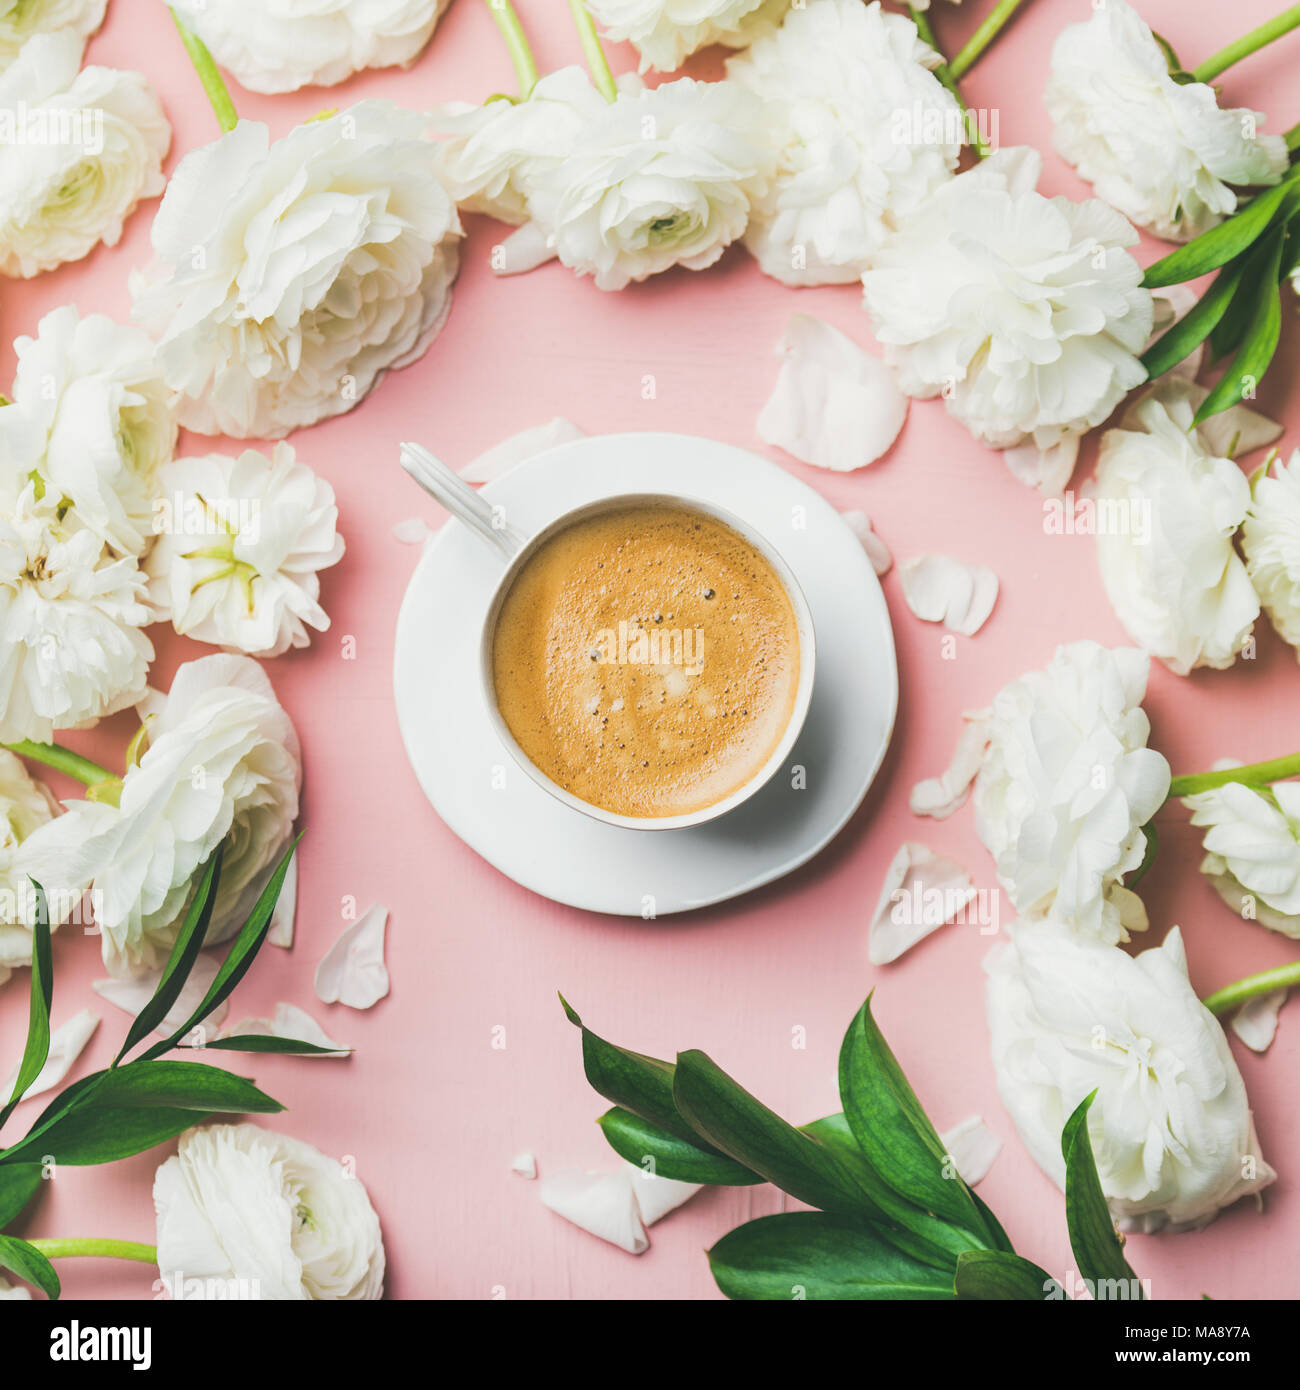 Cup of coffee and ranunculus flowers on light pink background Stock Photo